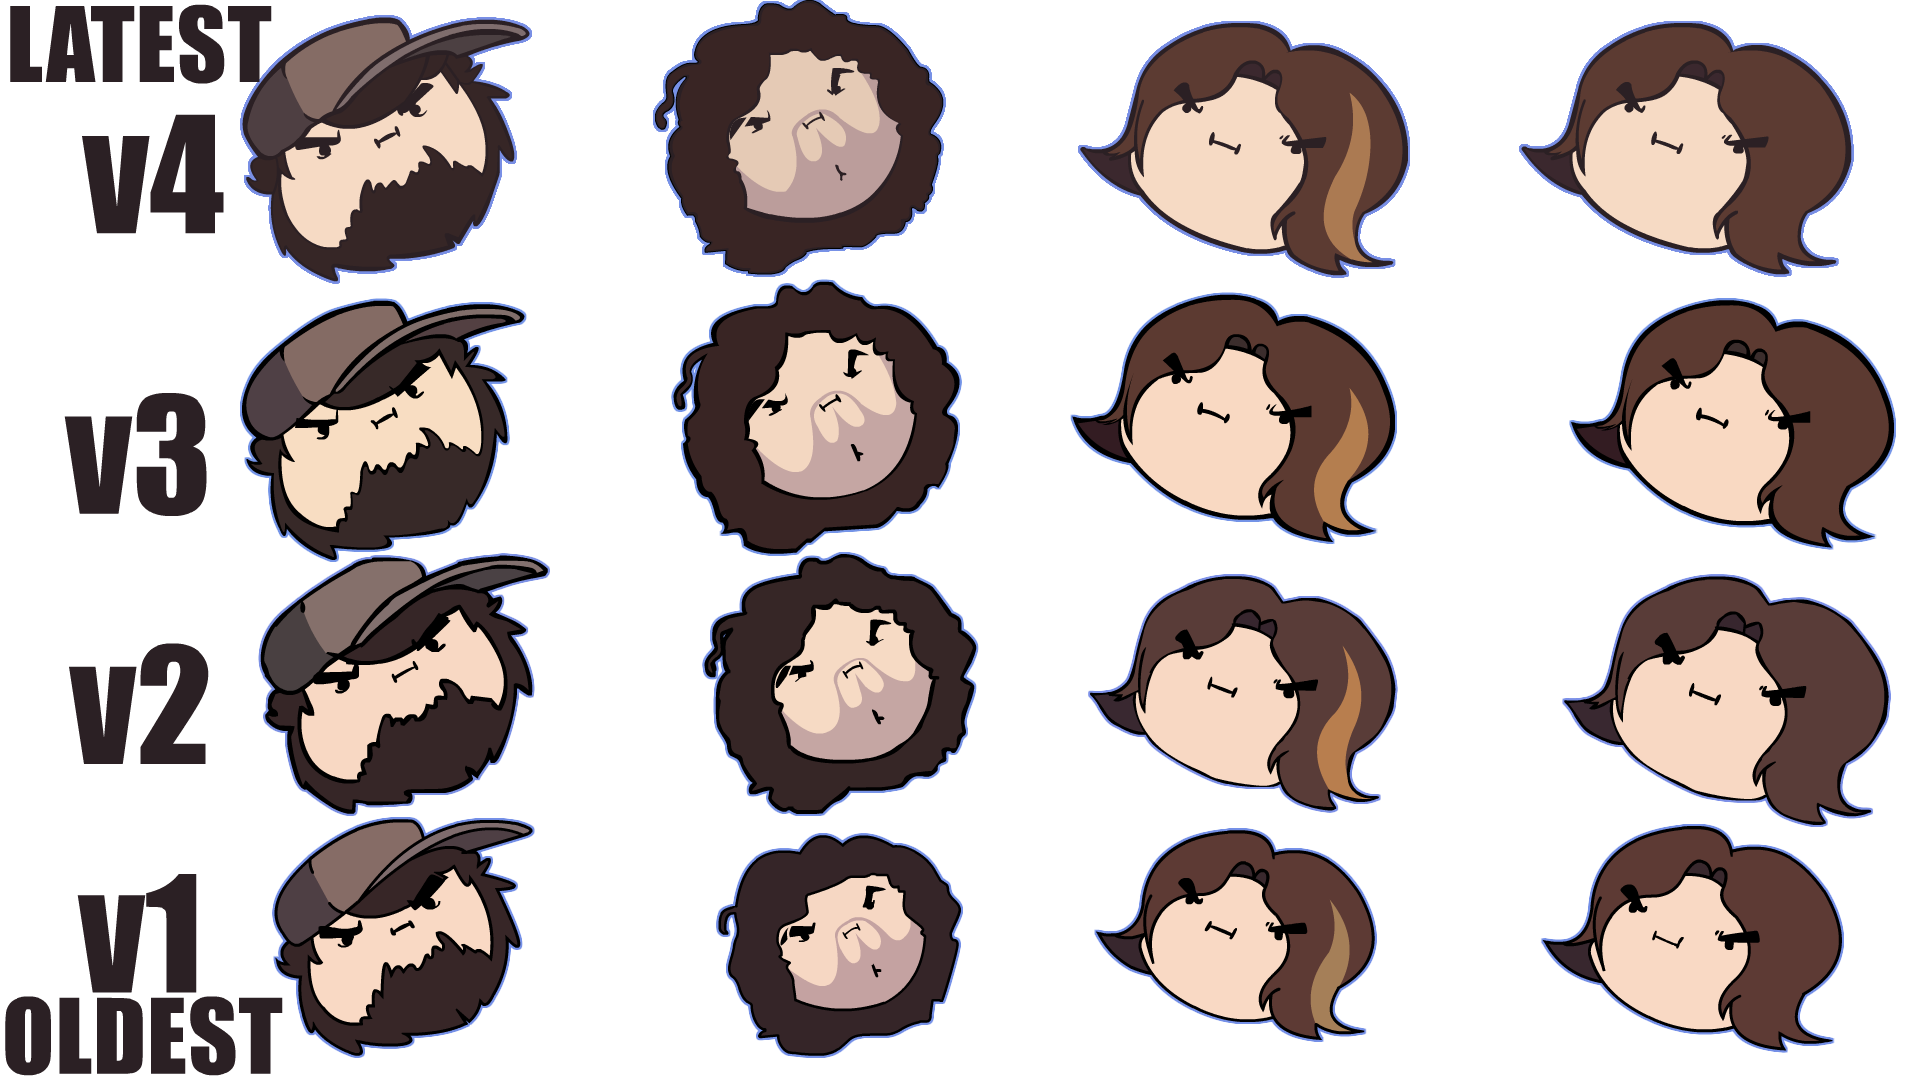 Evolution of My Game Grumps Heads by Keno9988 on DeviantArt.